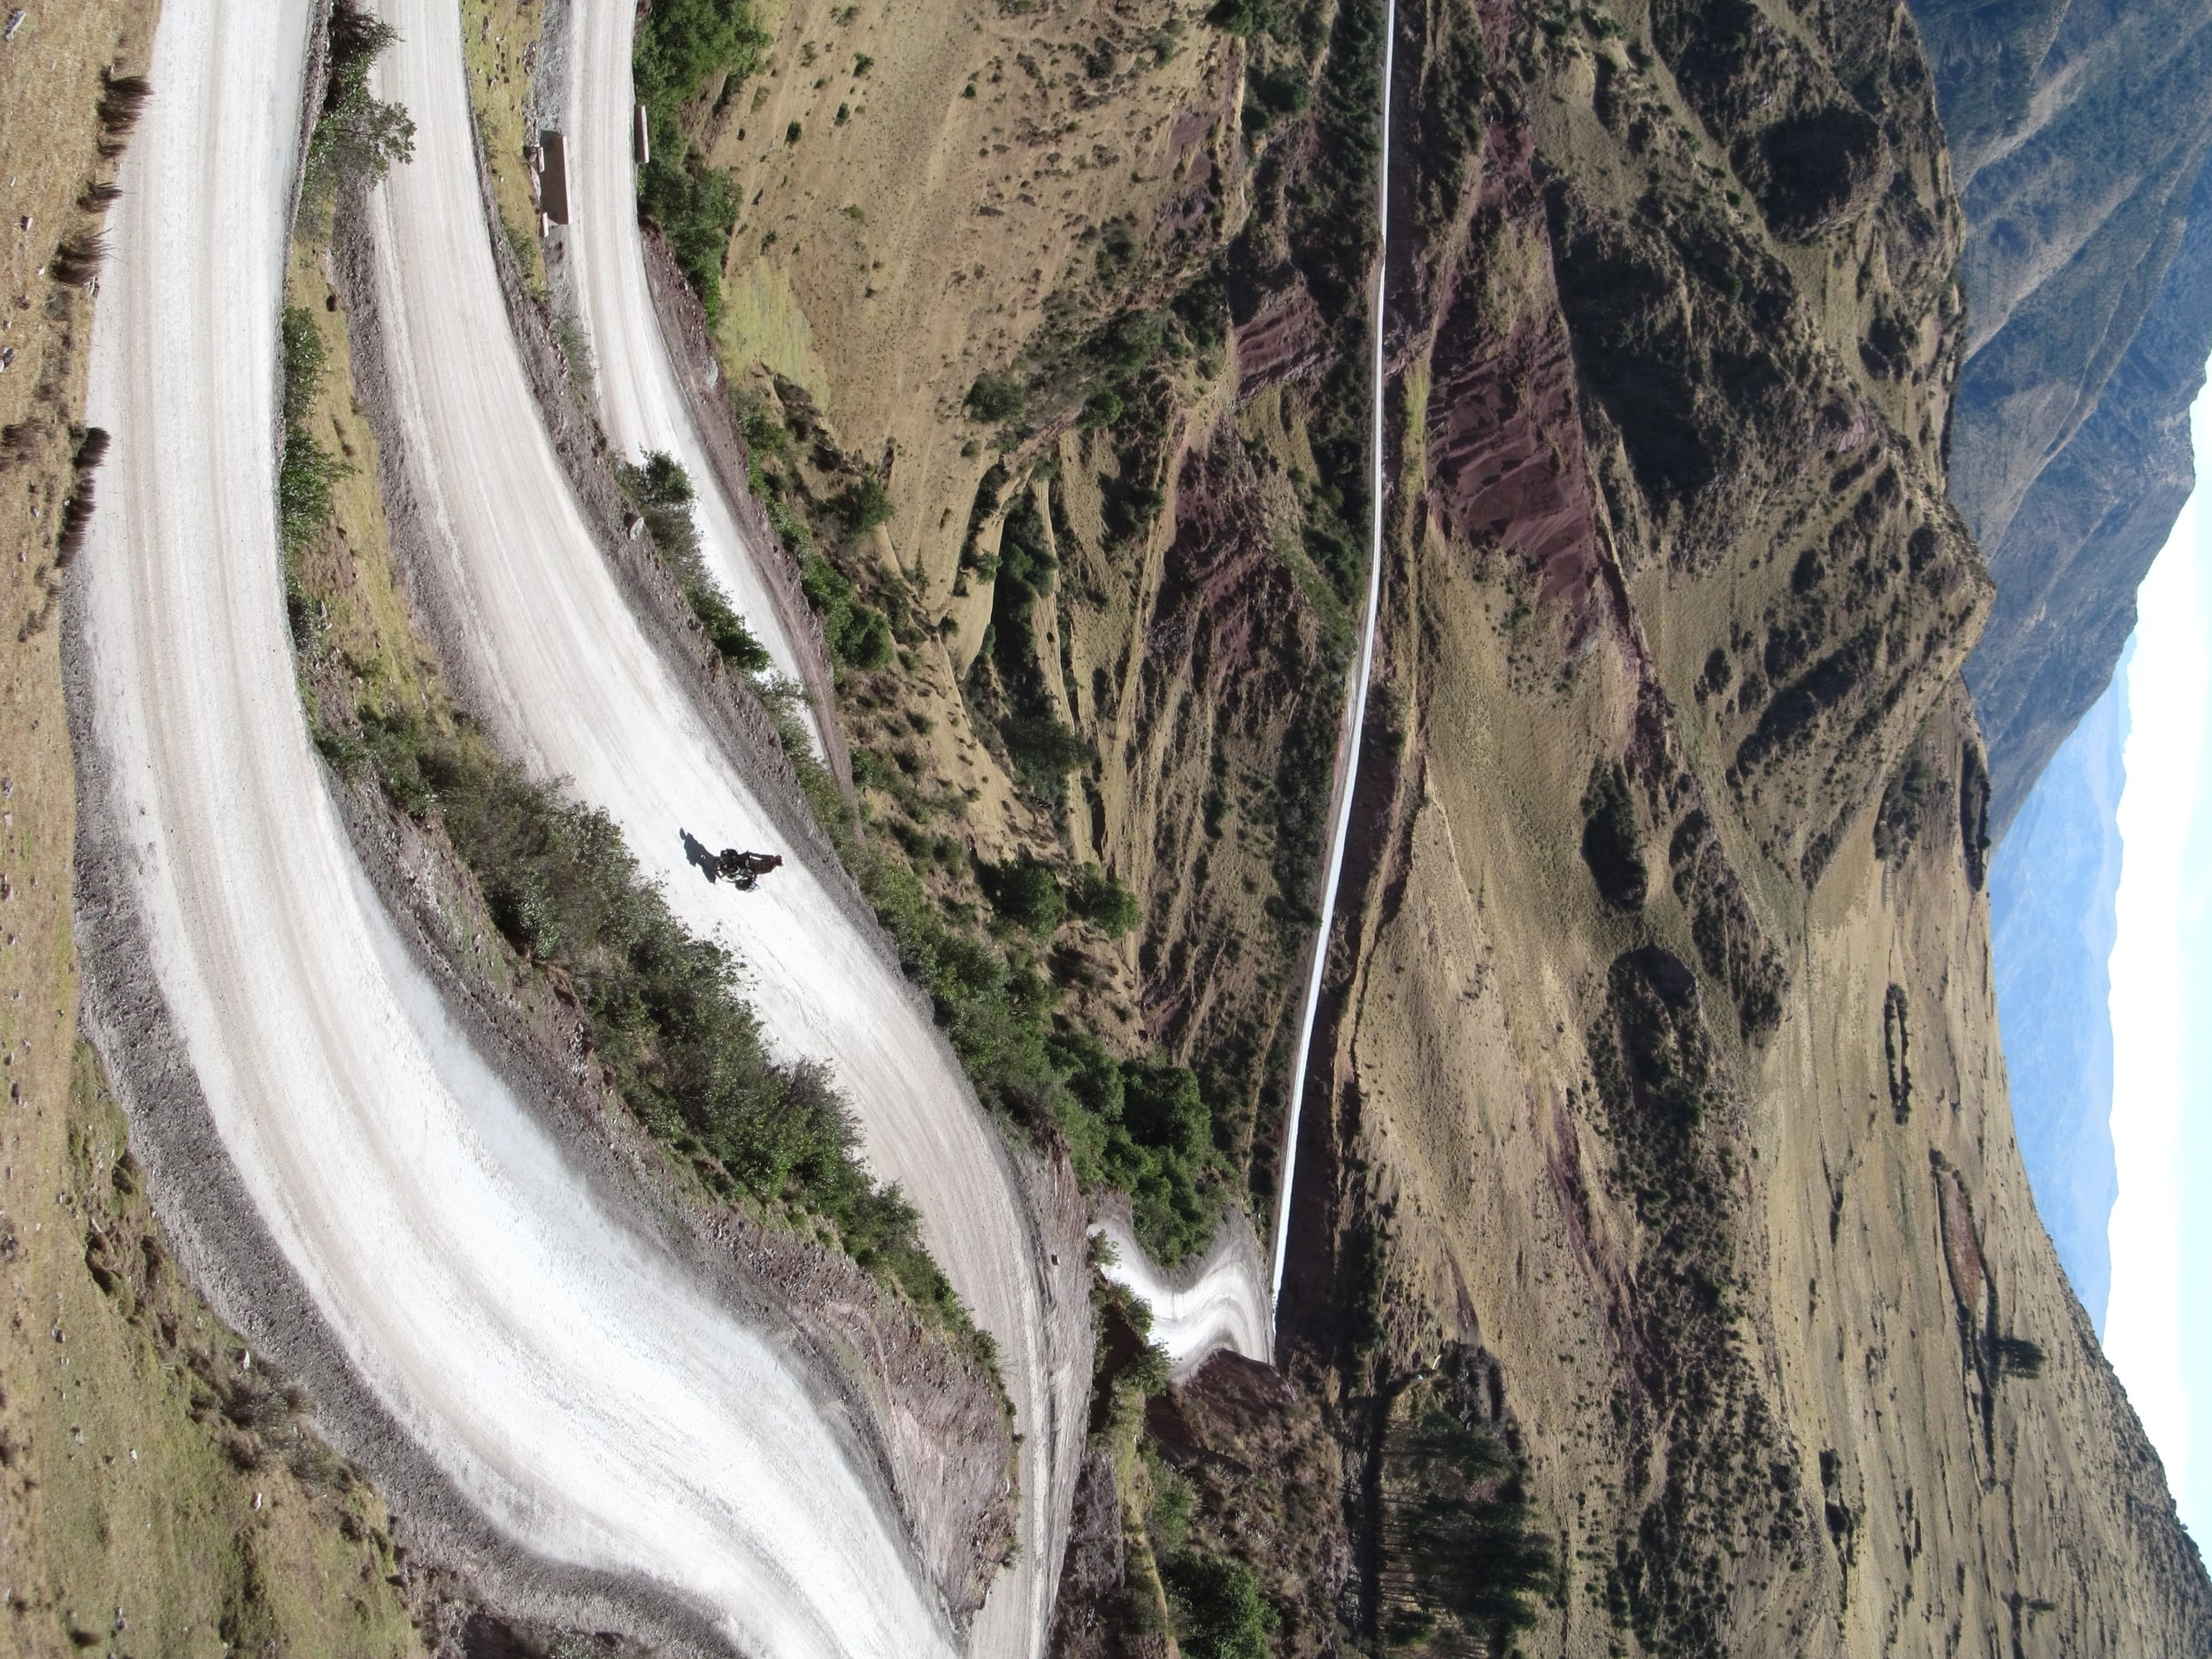 Amazing switchback to make up for the extra climbing.